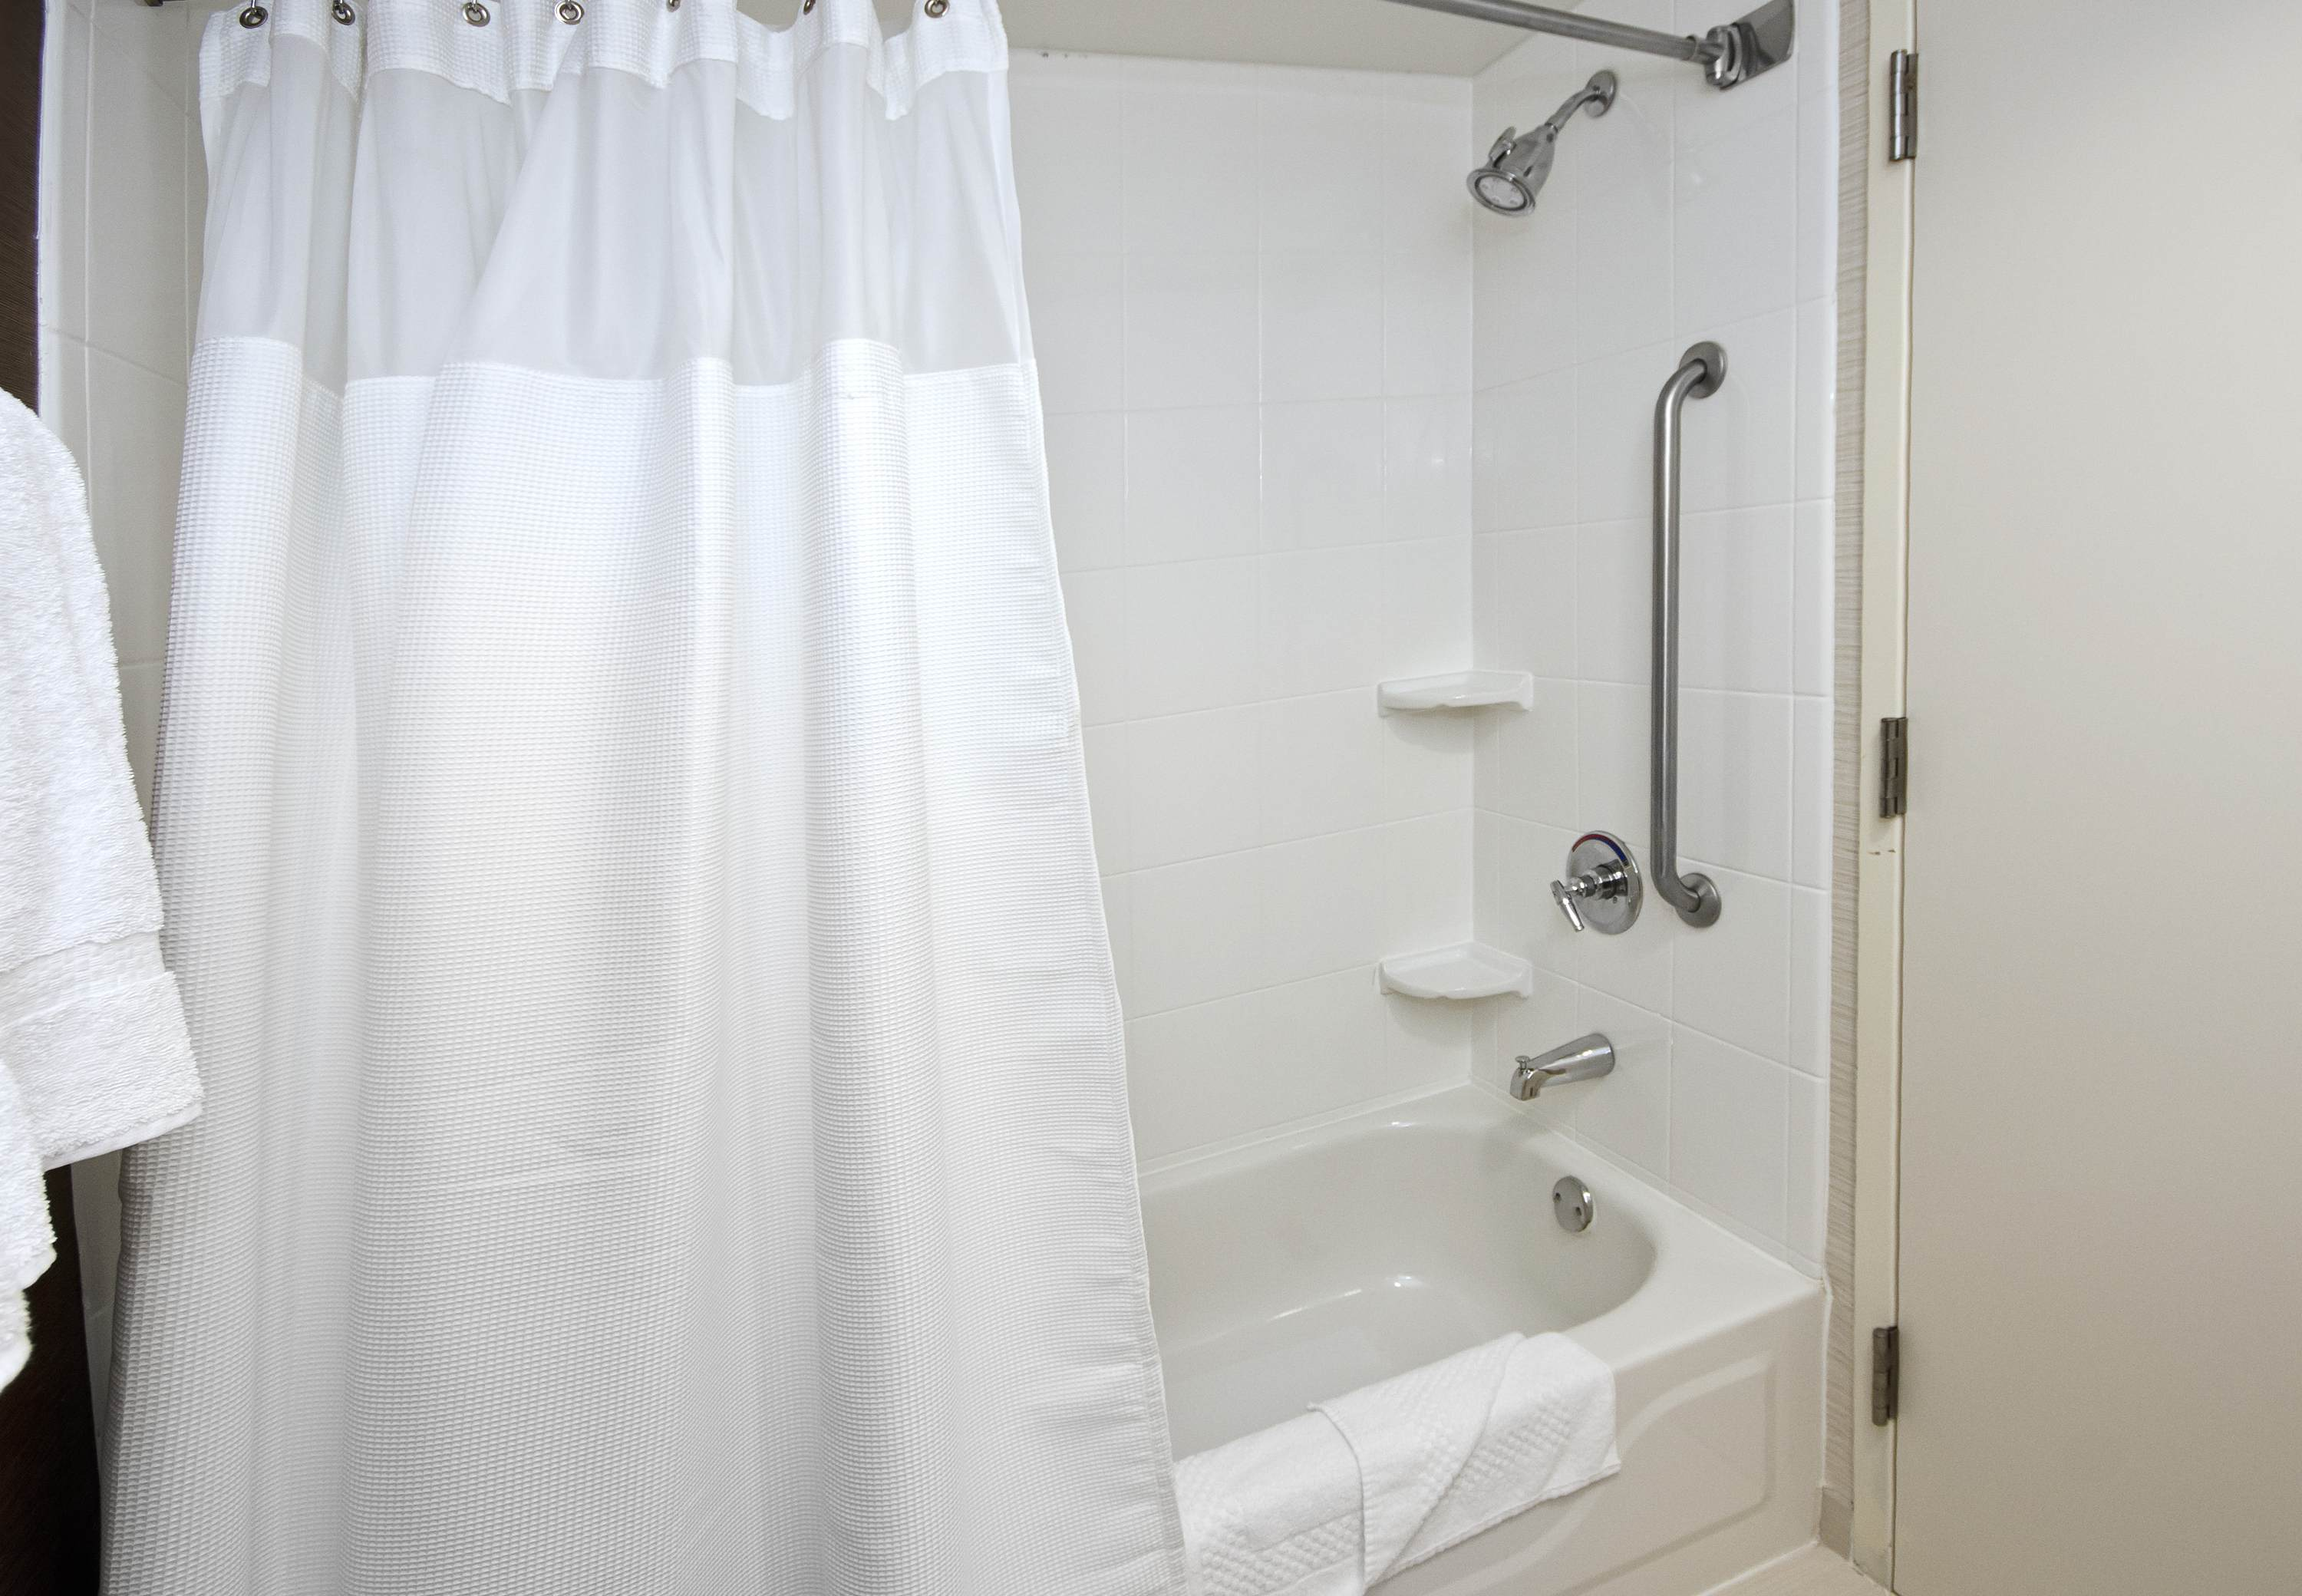 Fairfield Inn & Suites by Marriott Raleigh-Durham Airport/Research Triangle Park image 6